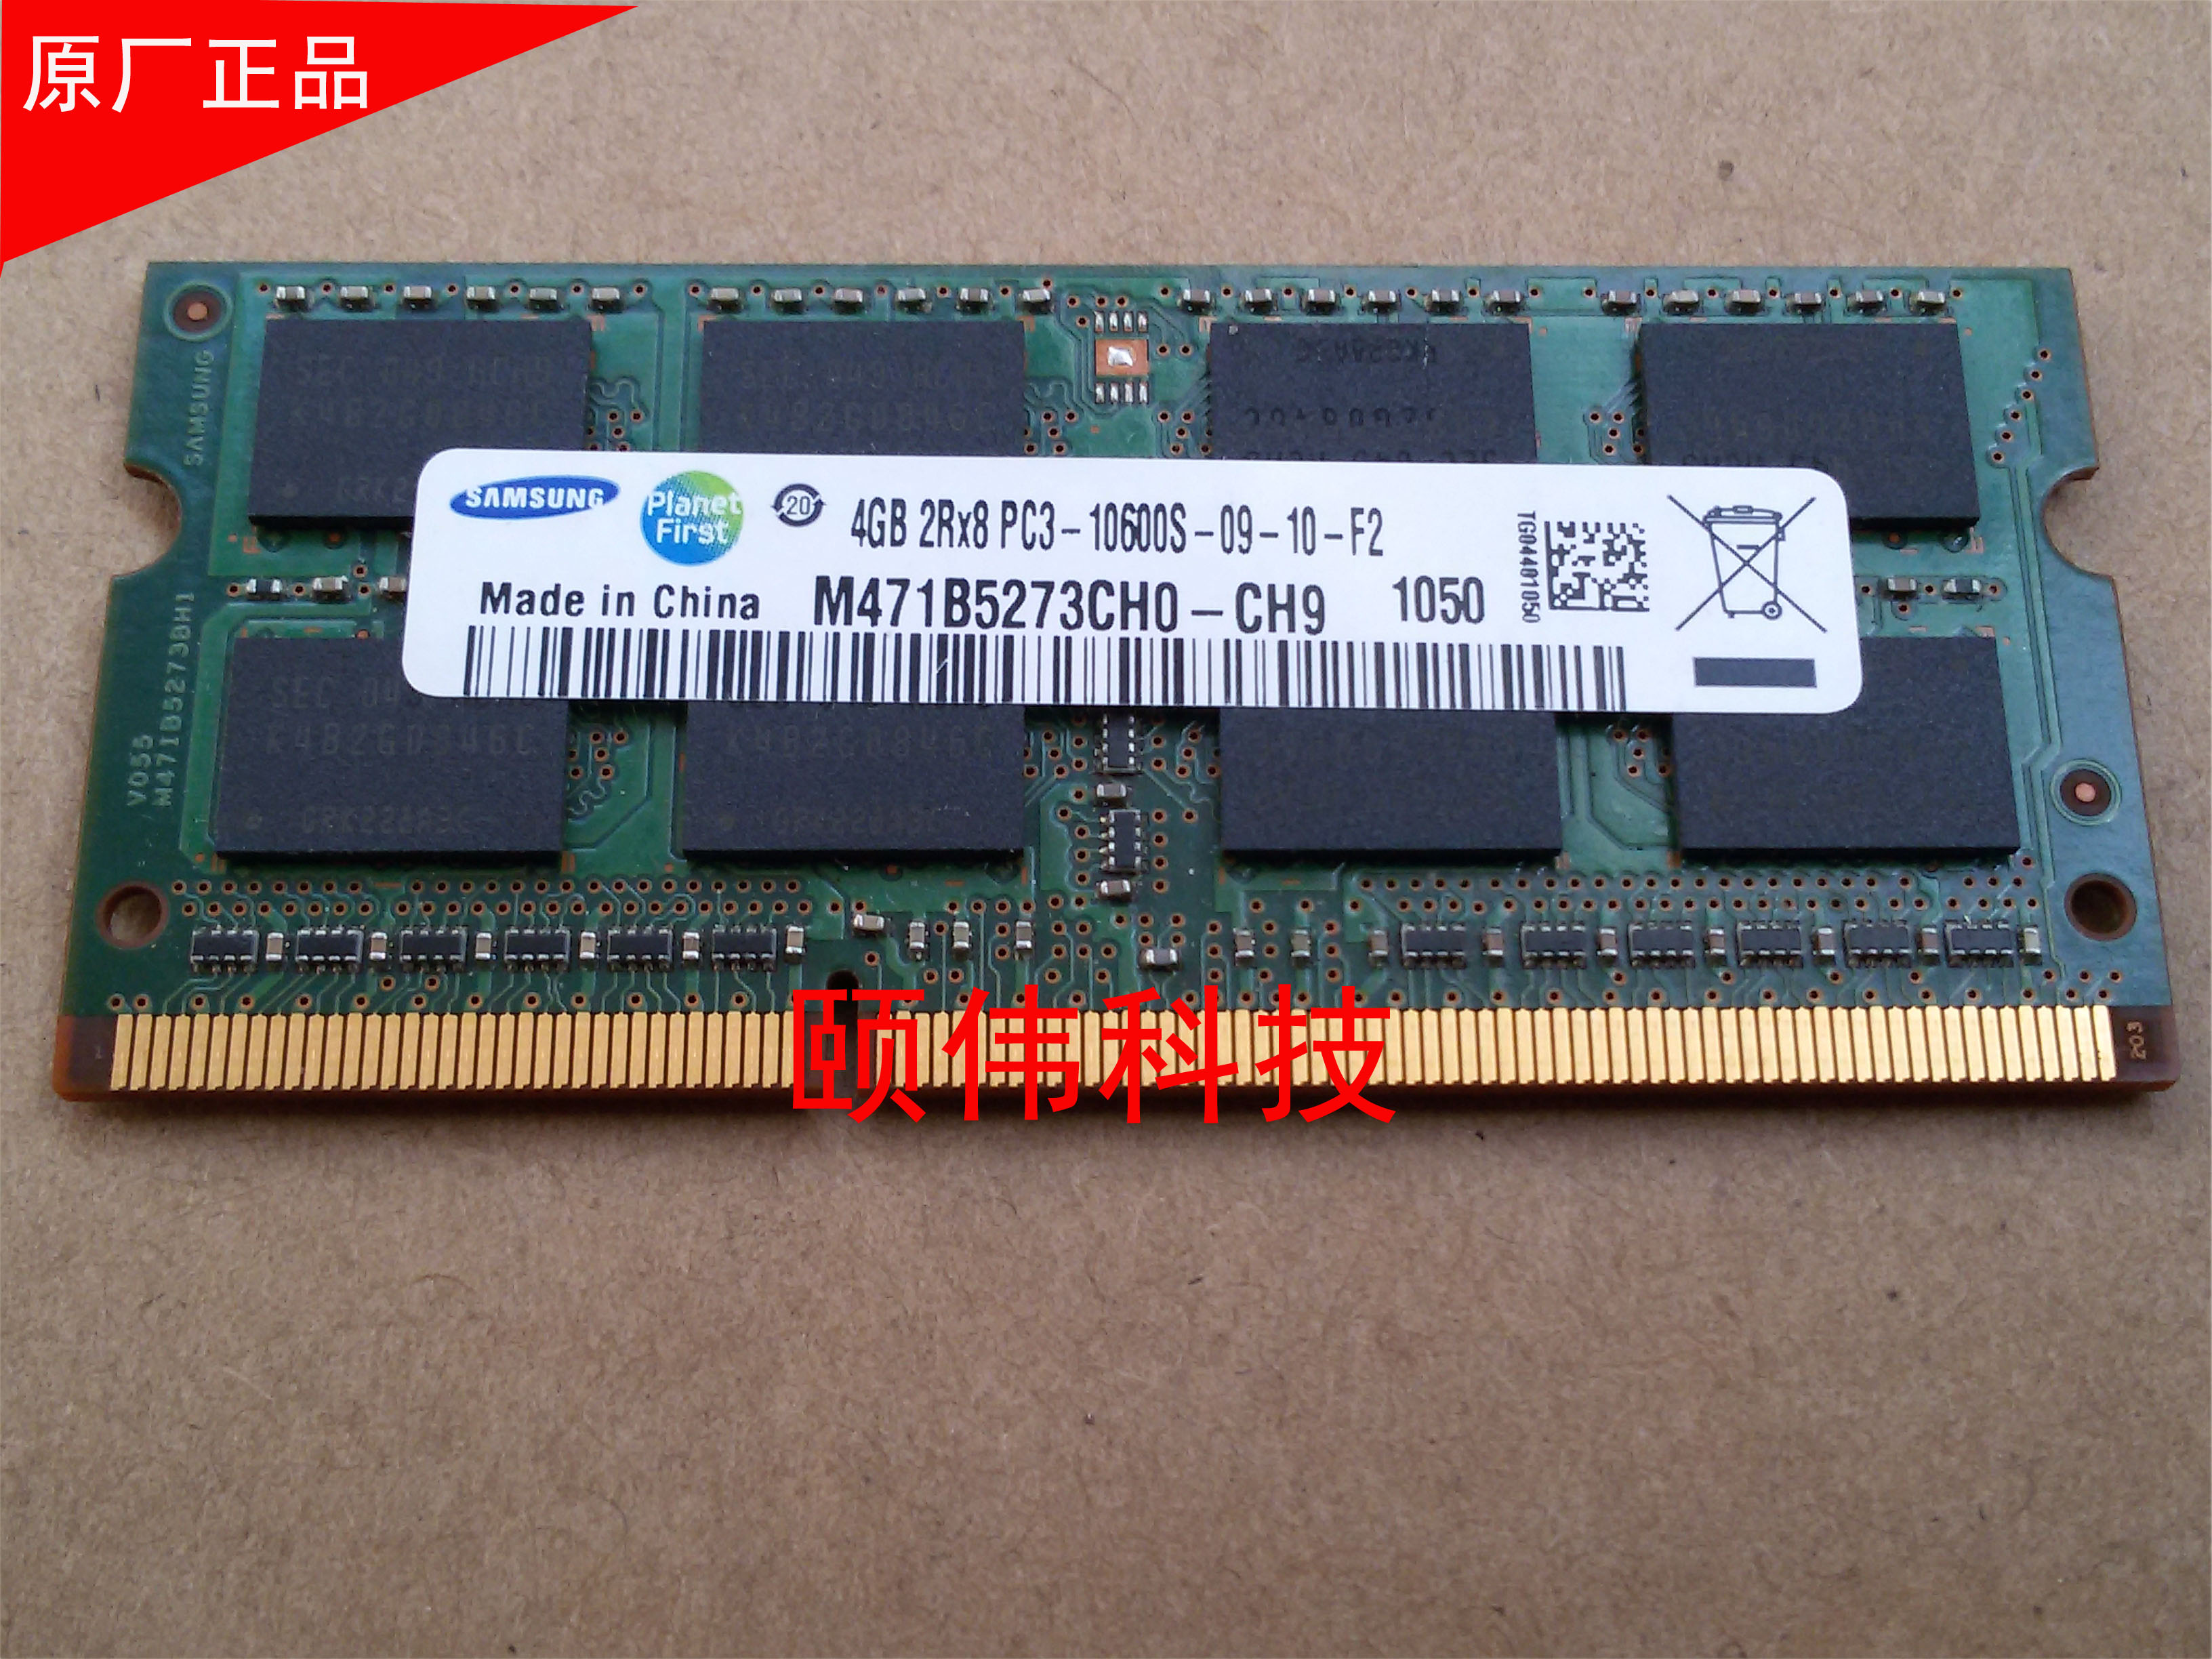 Categorylaptop Memoryproductnamesamsung Original Ddr3 4g 1333 Memori Laptop 2gb Kingston Pc3 10600 Authentic Samsung 4gb 2rx8 10600s Sdimm Notebook Memory